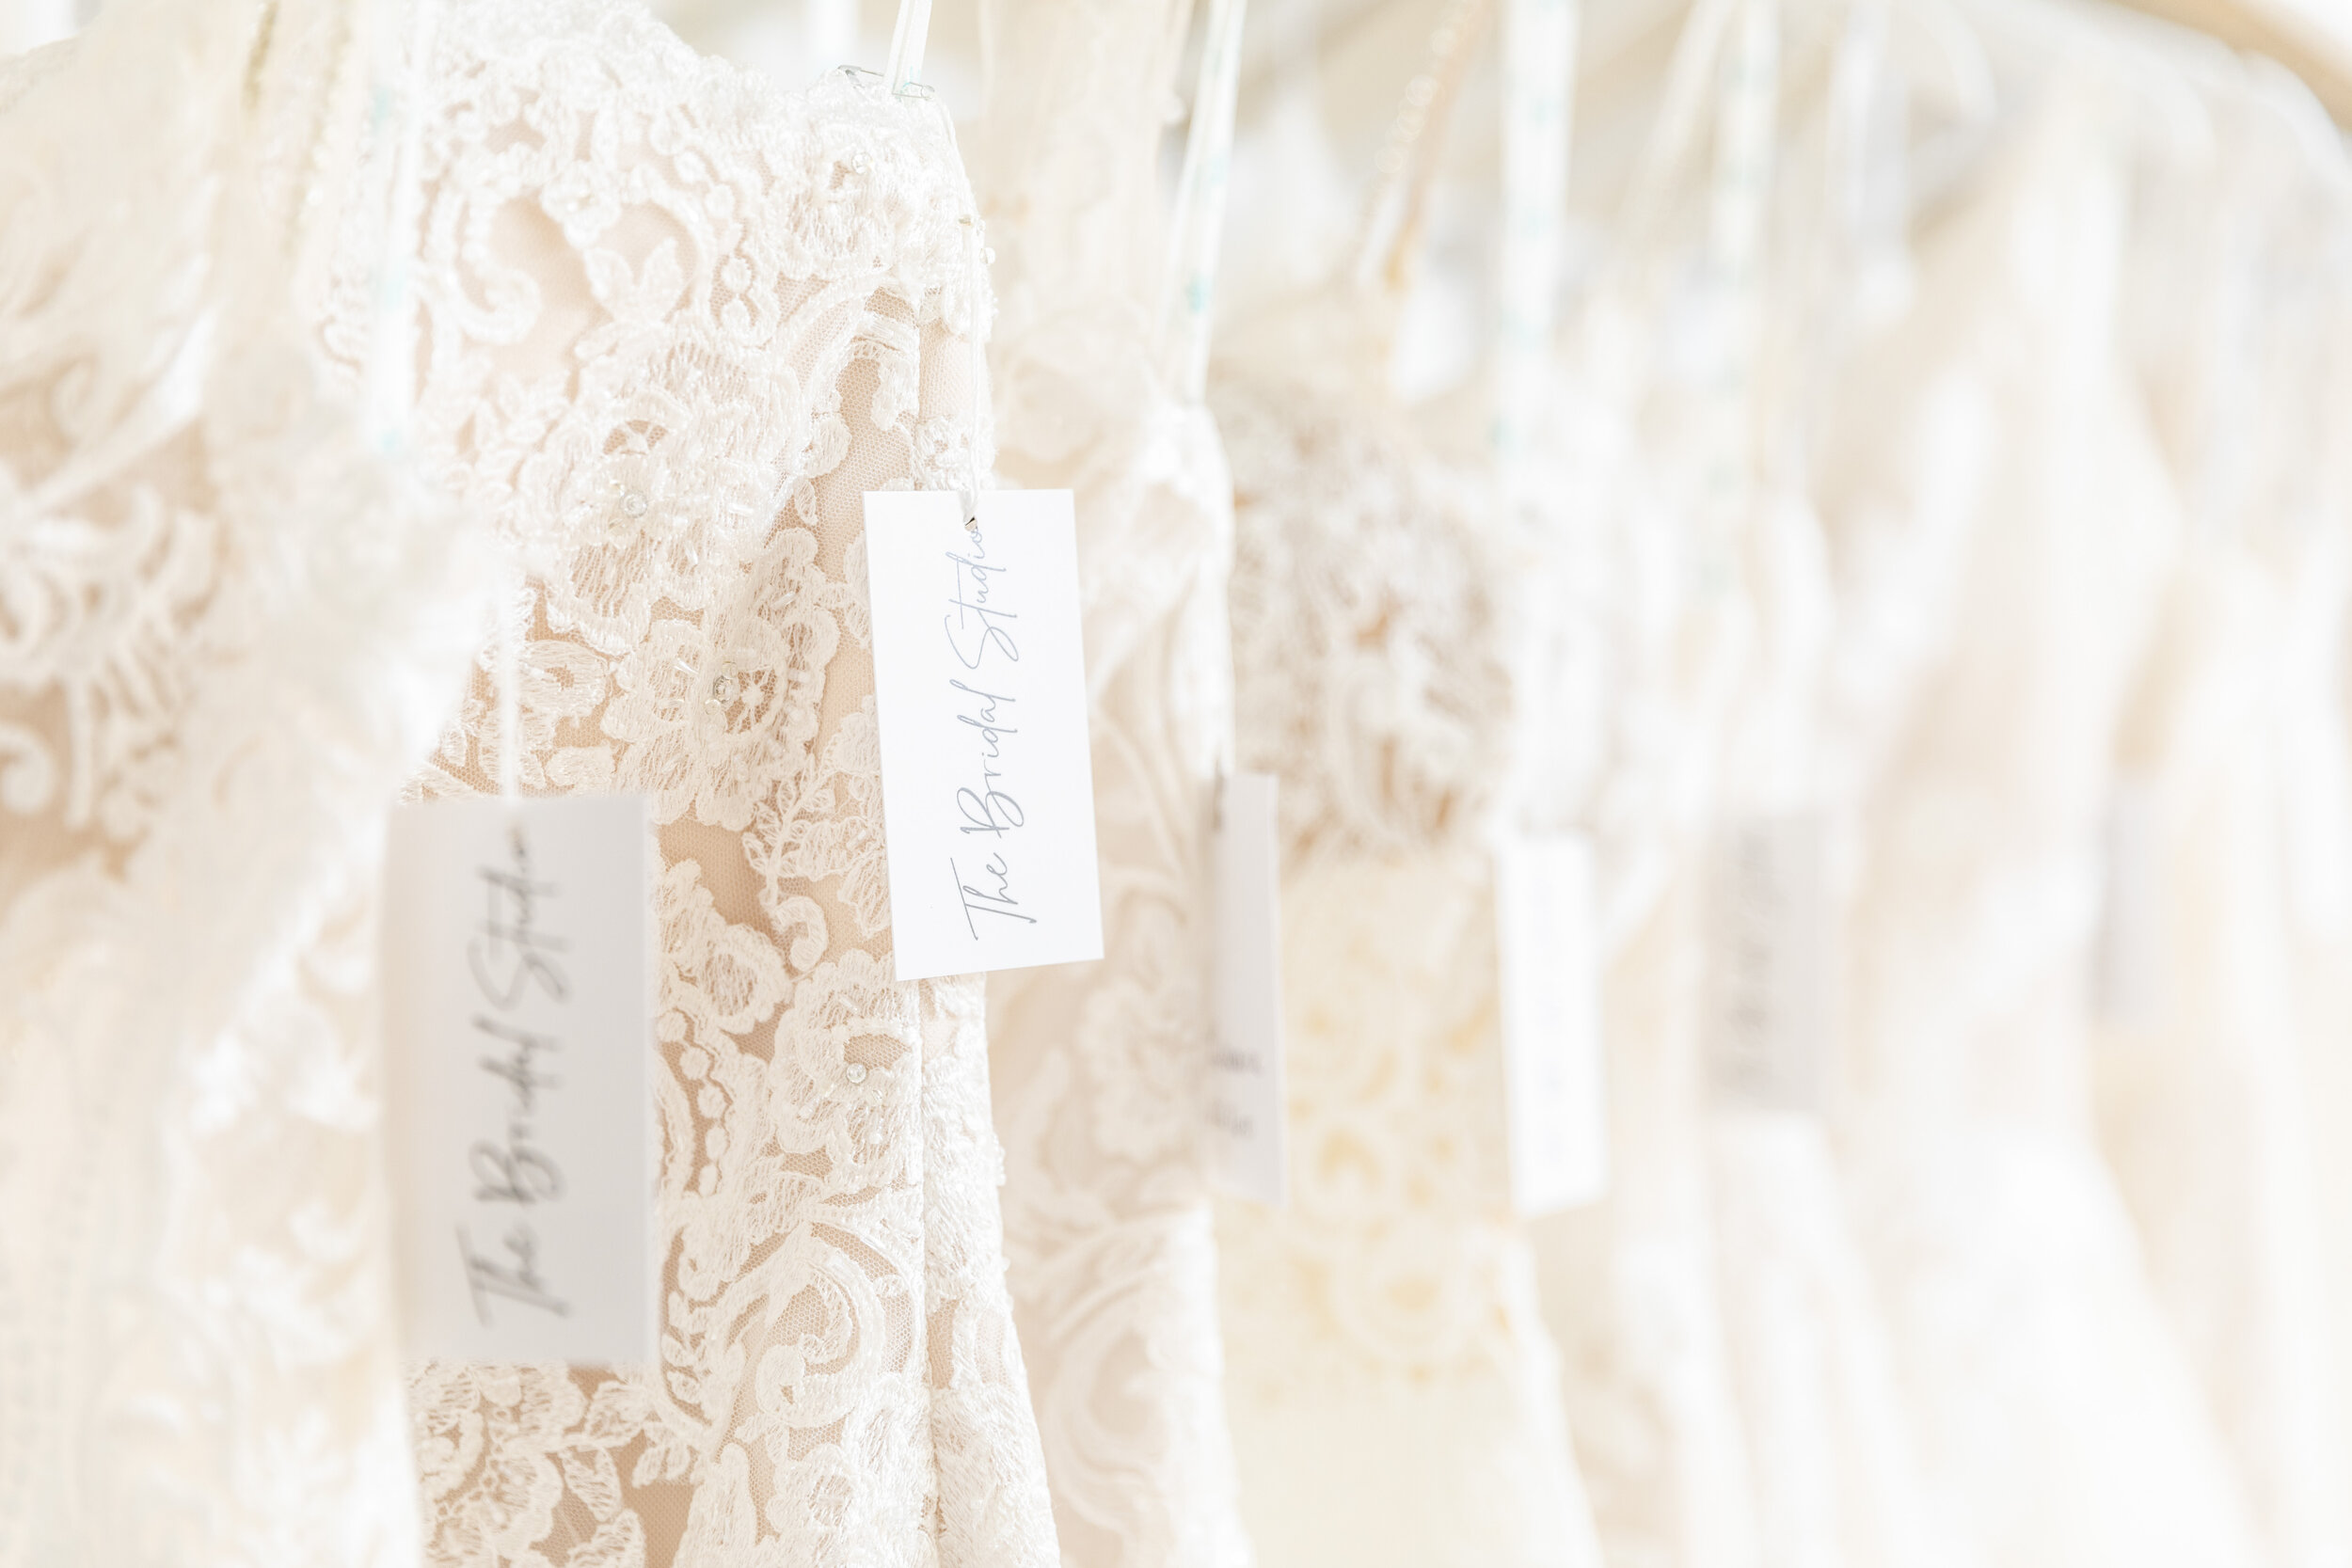 tips and tricks to customize your wedding dress provo utah wedding dress inspiration how to make your wedding dress your own try two in one dress add layers enhance wedding look with accessories make it what you want tailor your dress to fit you #tipstomakeyourgownunique #howtostyleyourweddingdress #jewelry #belts #earrings #unique #bridetipsandtricks #bracelets #necklaces #provoutah #claritylane